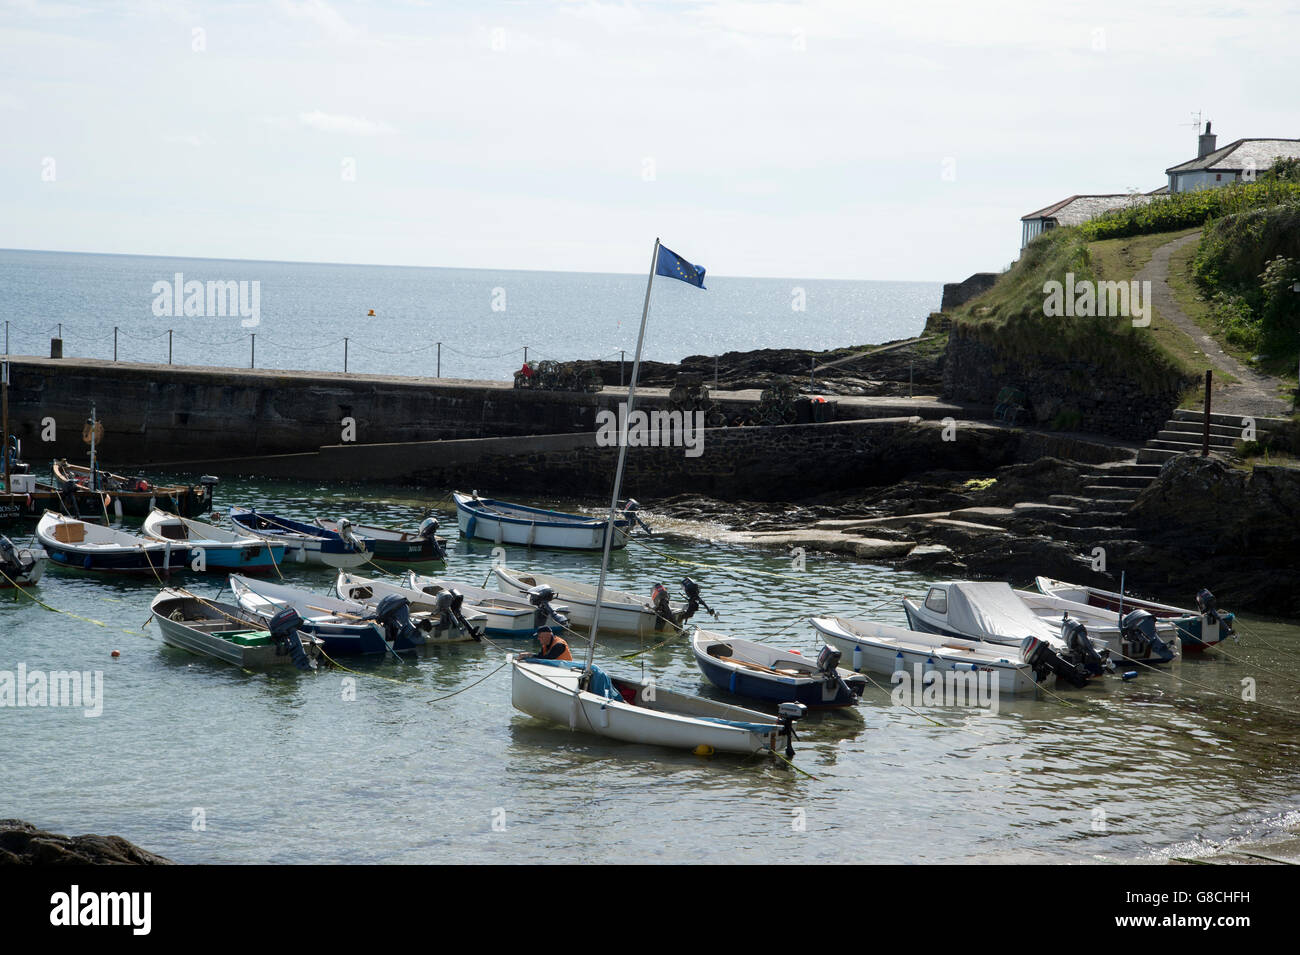 Cornwall June 2016. Port Scatho. Dingy flying a European flag, preparing to sail away on day of EU referendum - Stock Image